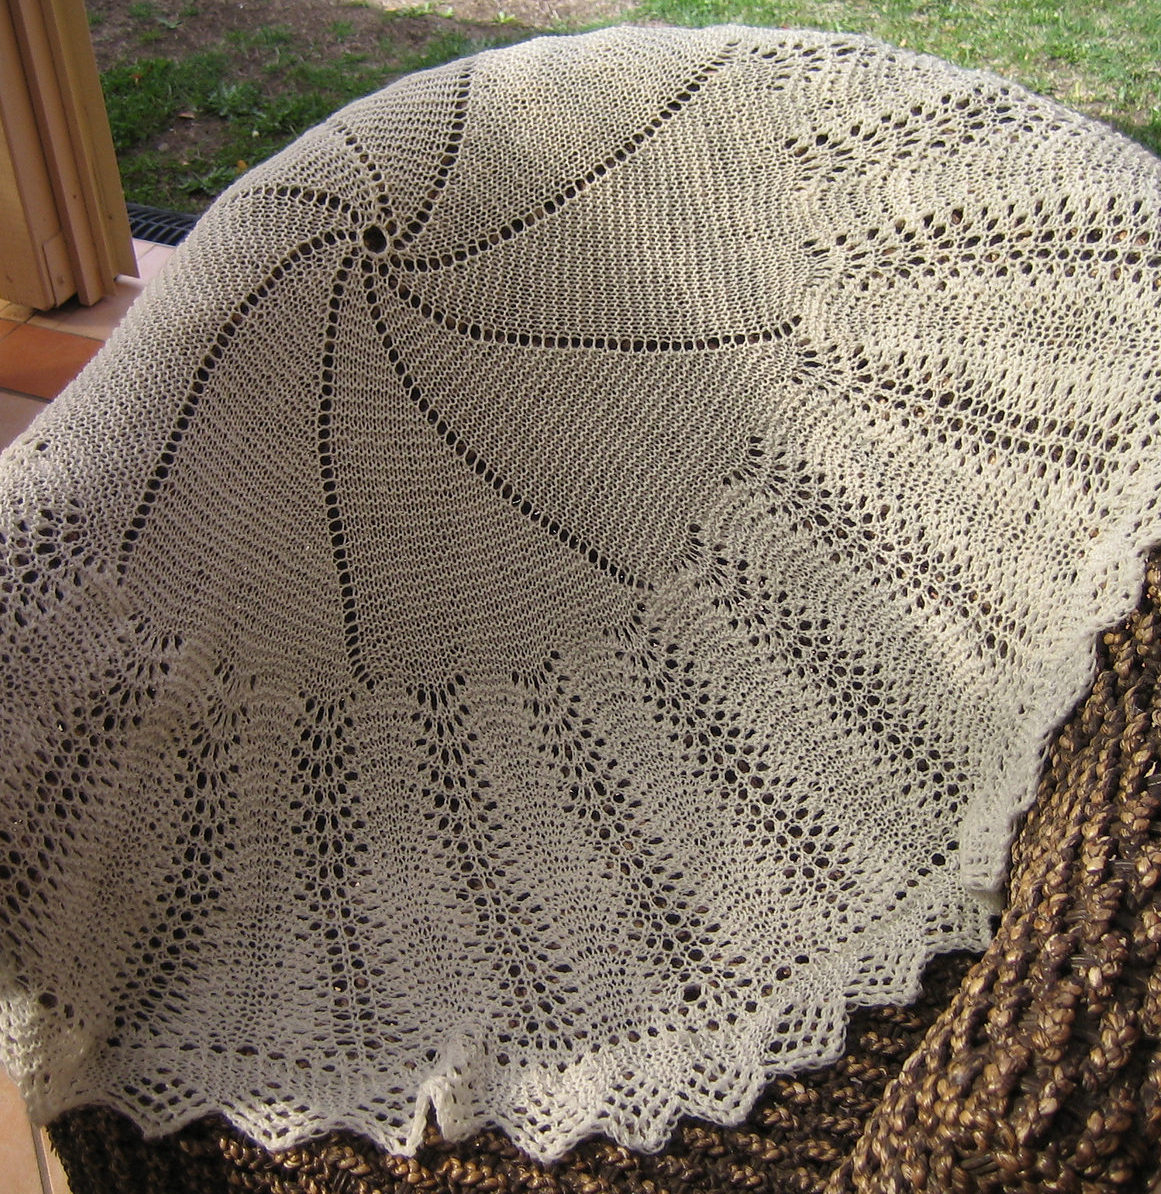 Knit Afghan Patterns Free Afghan In The Round Knitting Patterns In The Loop Knitting